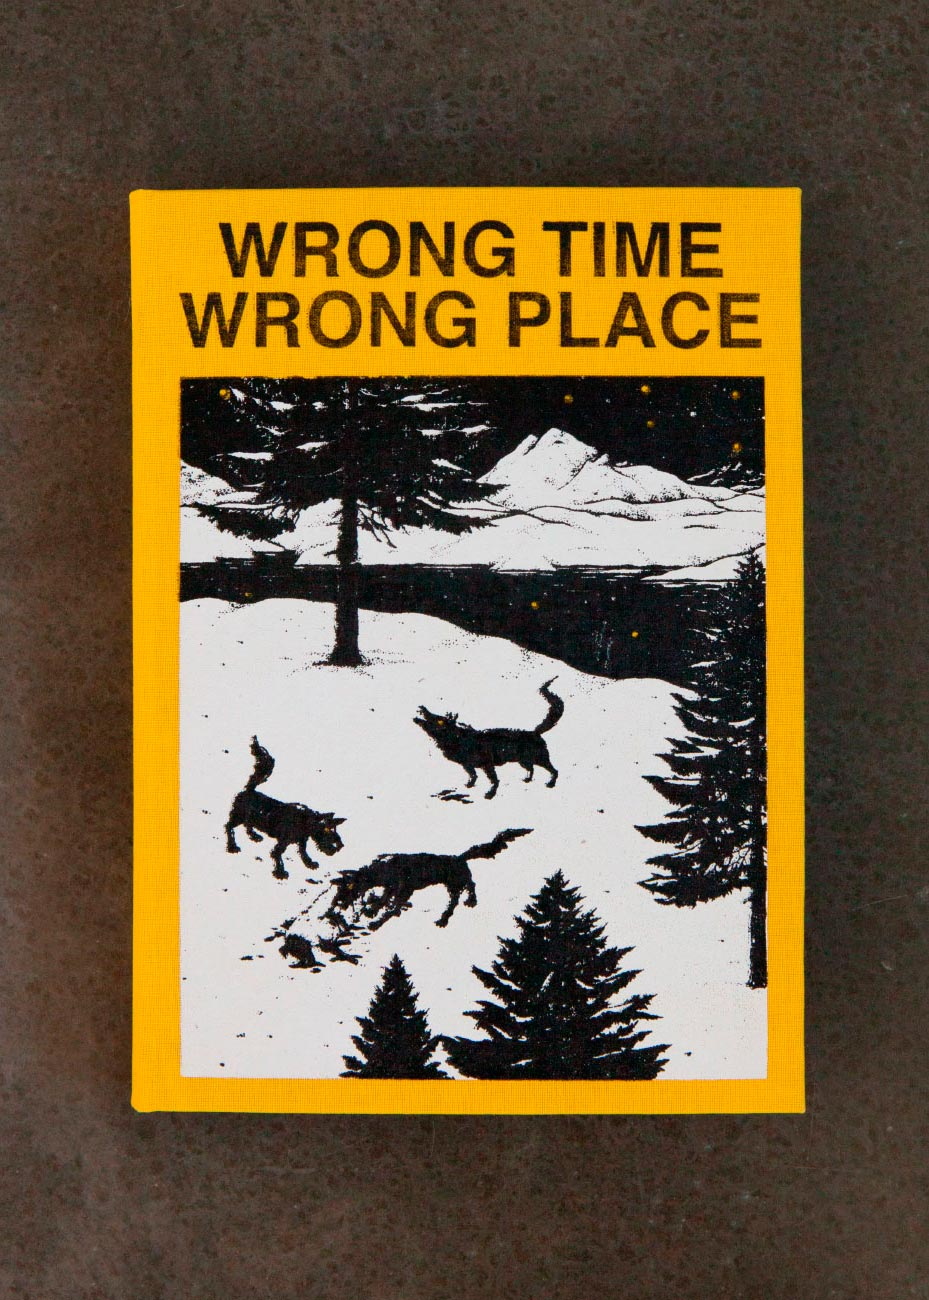 WRONG TIME WRONG PLACE